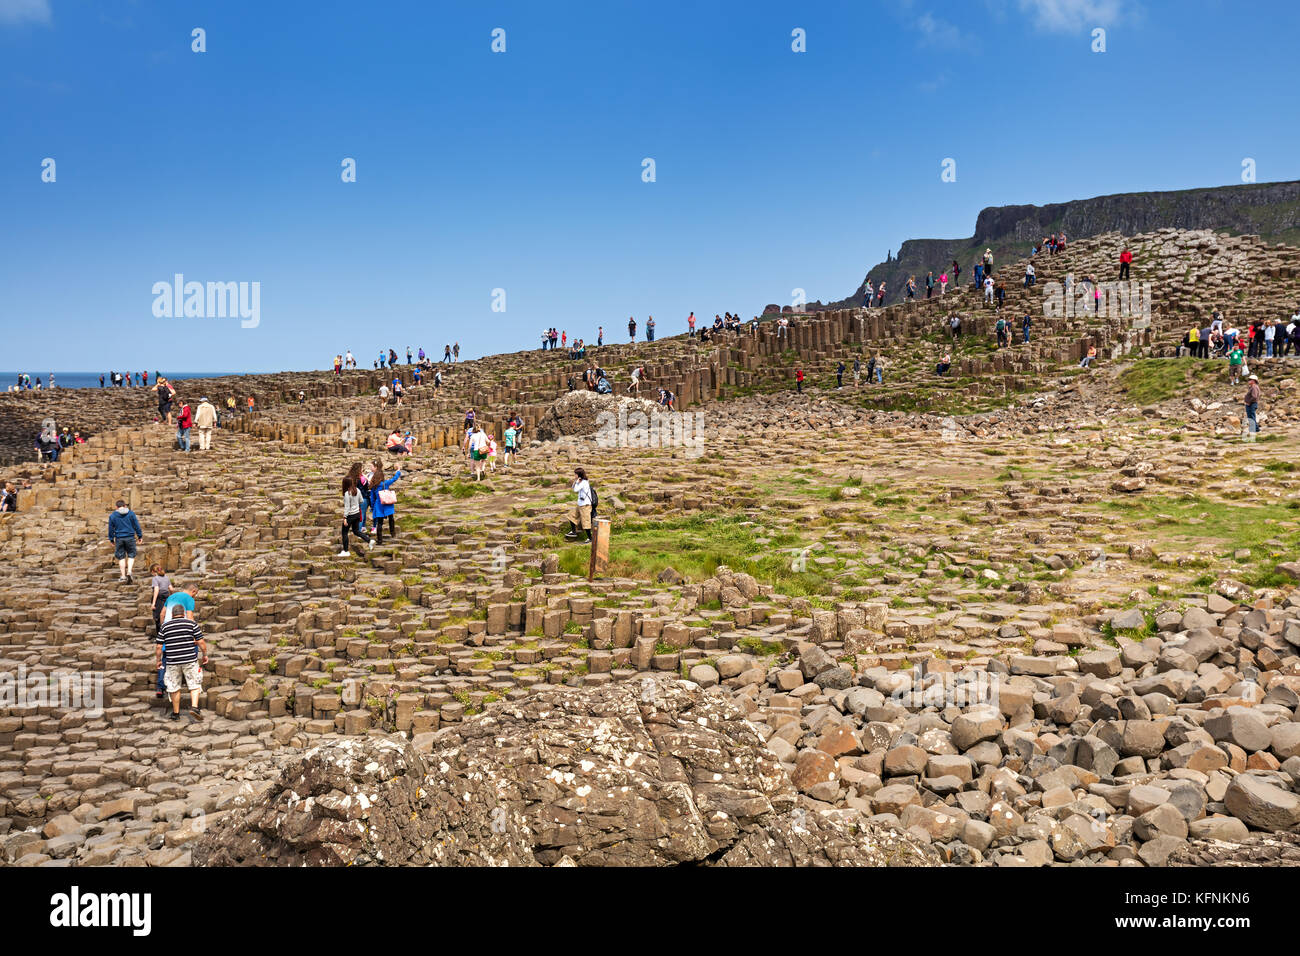 Thousands of tourists visiting Giant's Causeway in County Antrim of Northern Ireland, a World Heritage Site - Stock Image